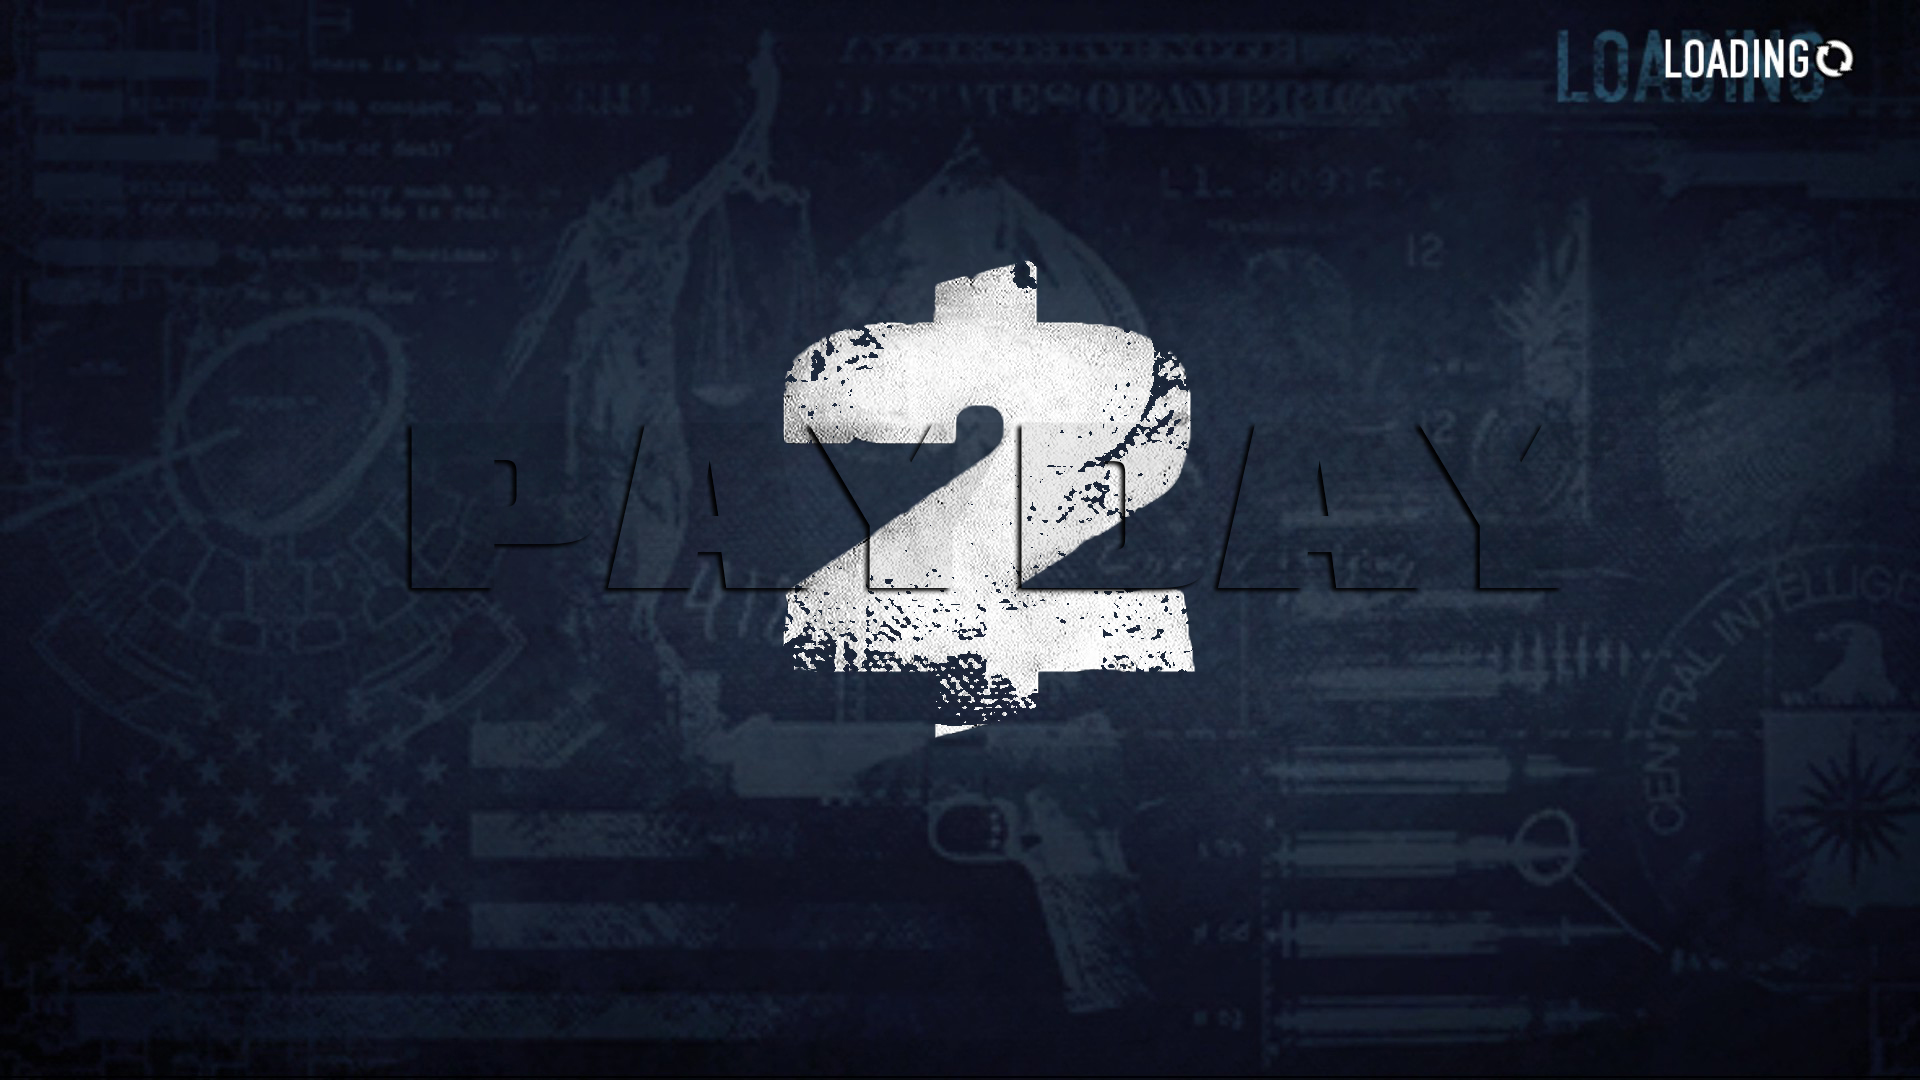 Steam Community  PAYDAY 2 Wallpaper HD